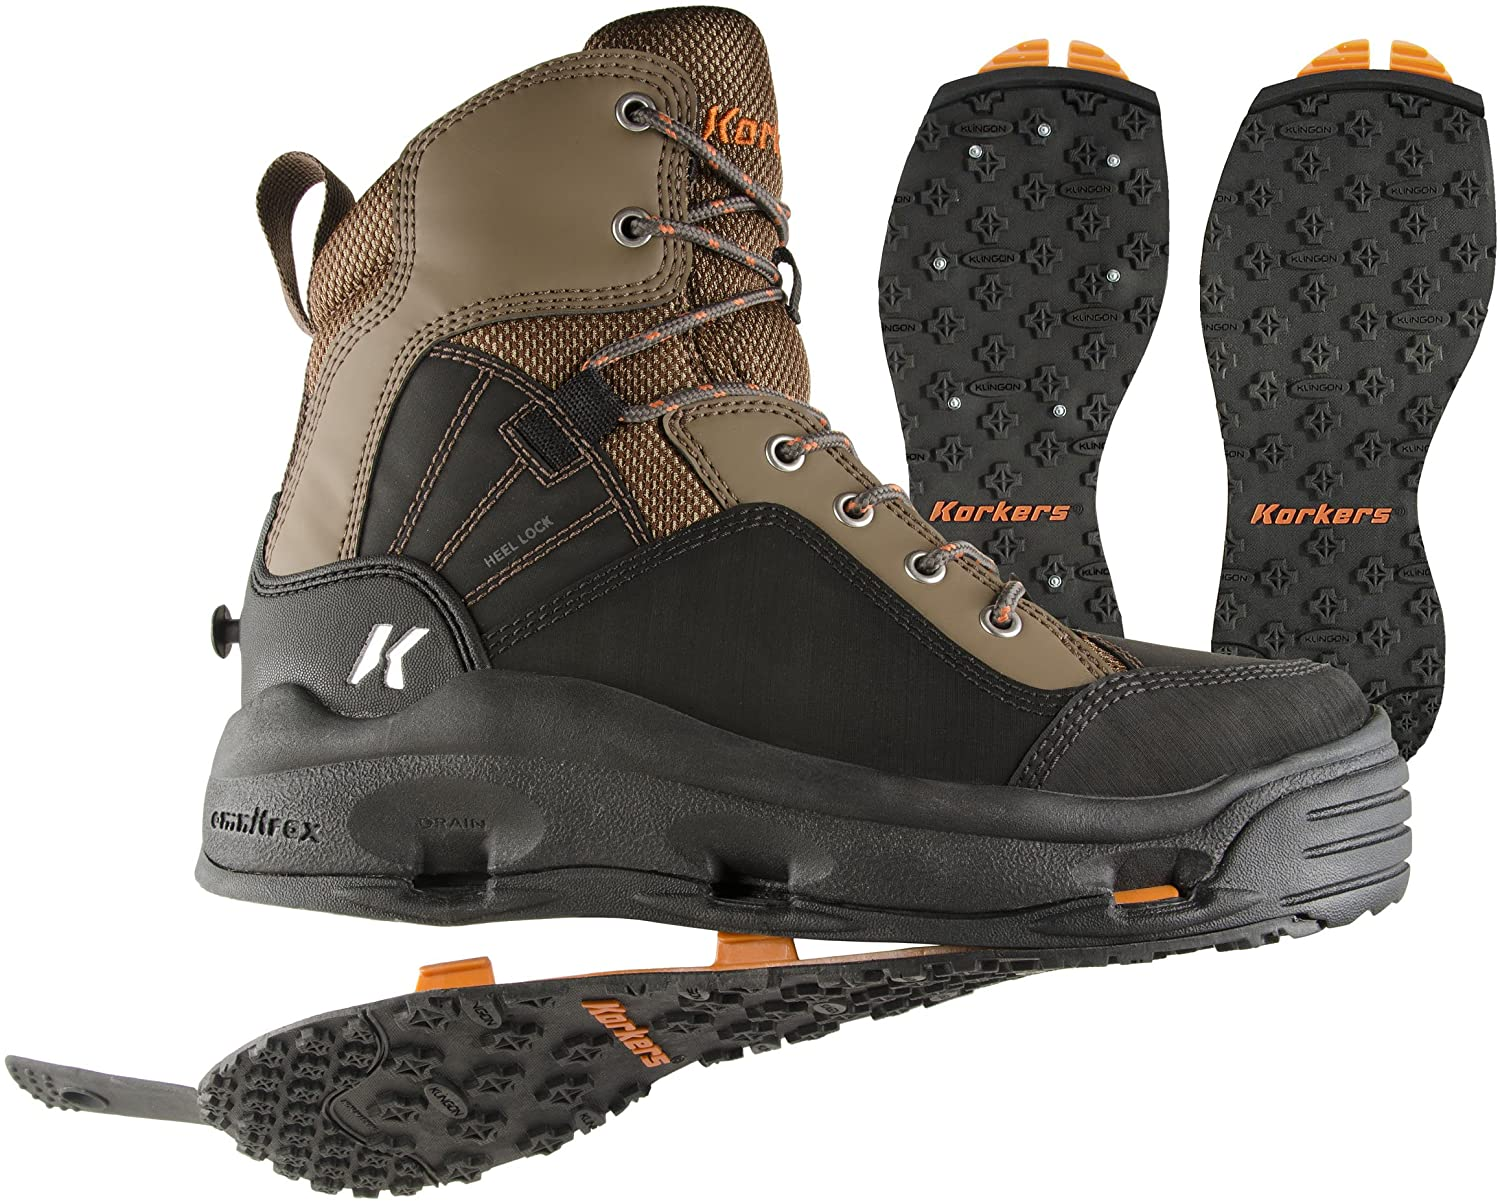 Korkers fly fishing wading boots